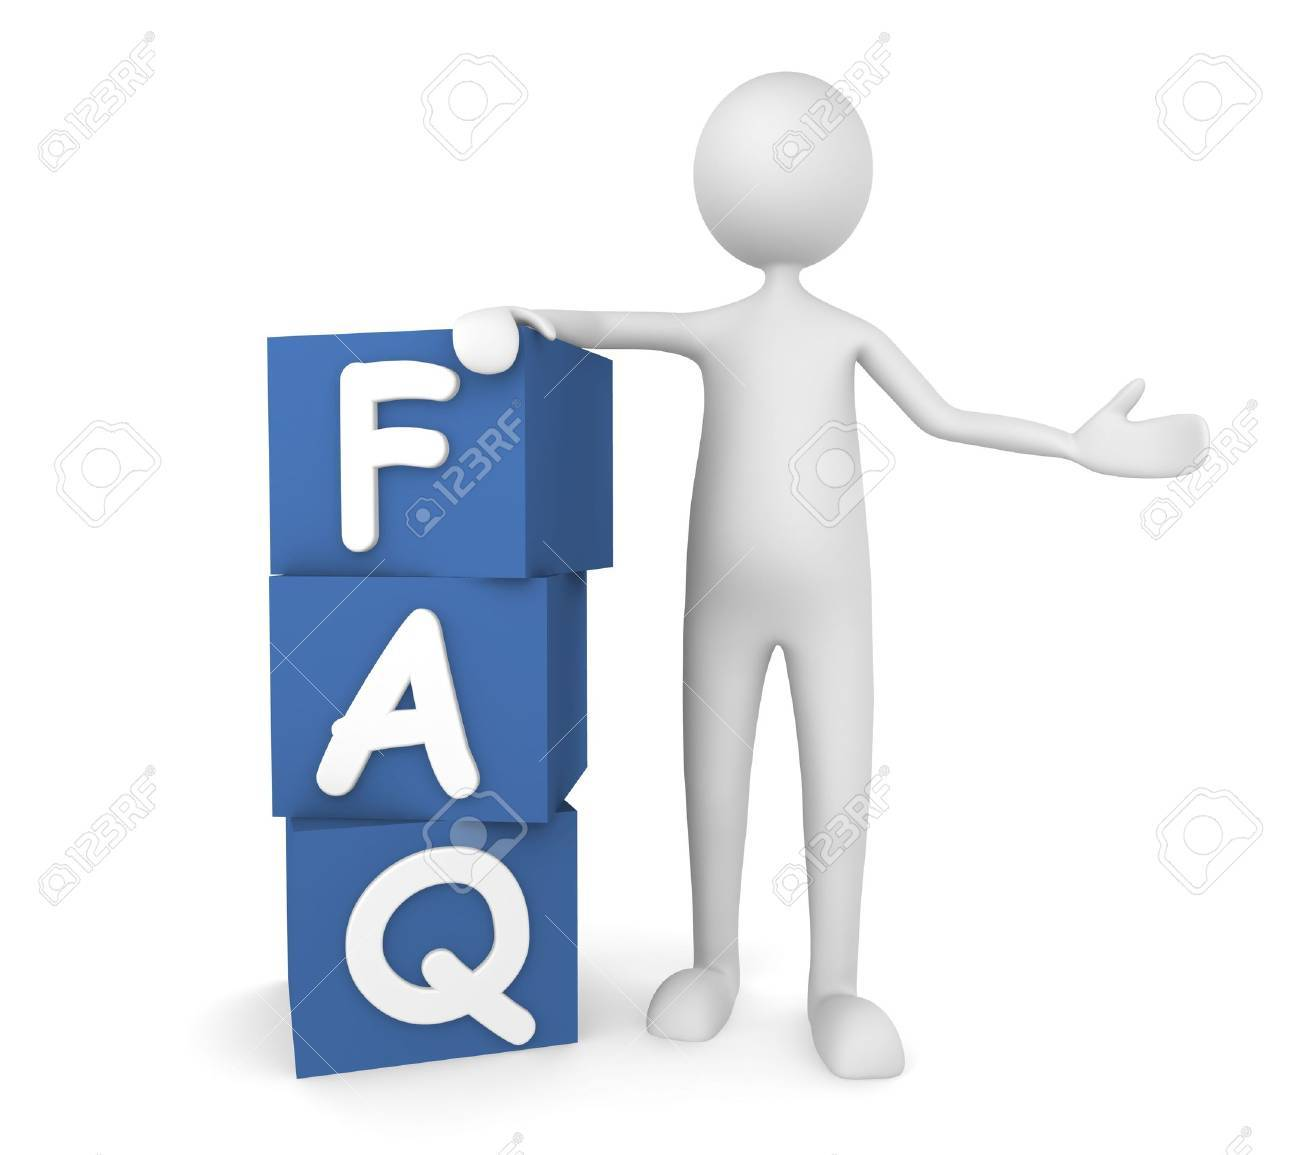 Concept depicting man leaning on to FAQ boxes; great for web sites, advertisements, help concepts. Stock Photo - 7163492